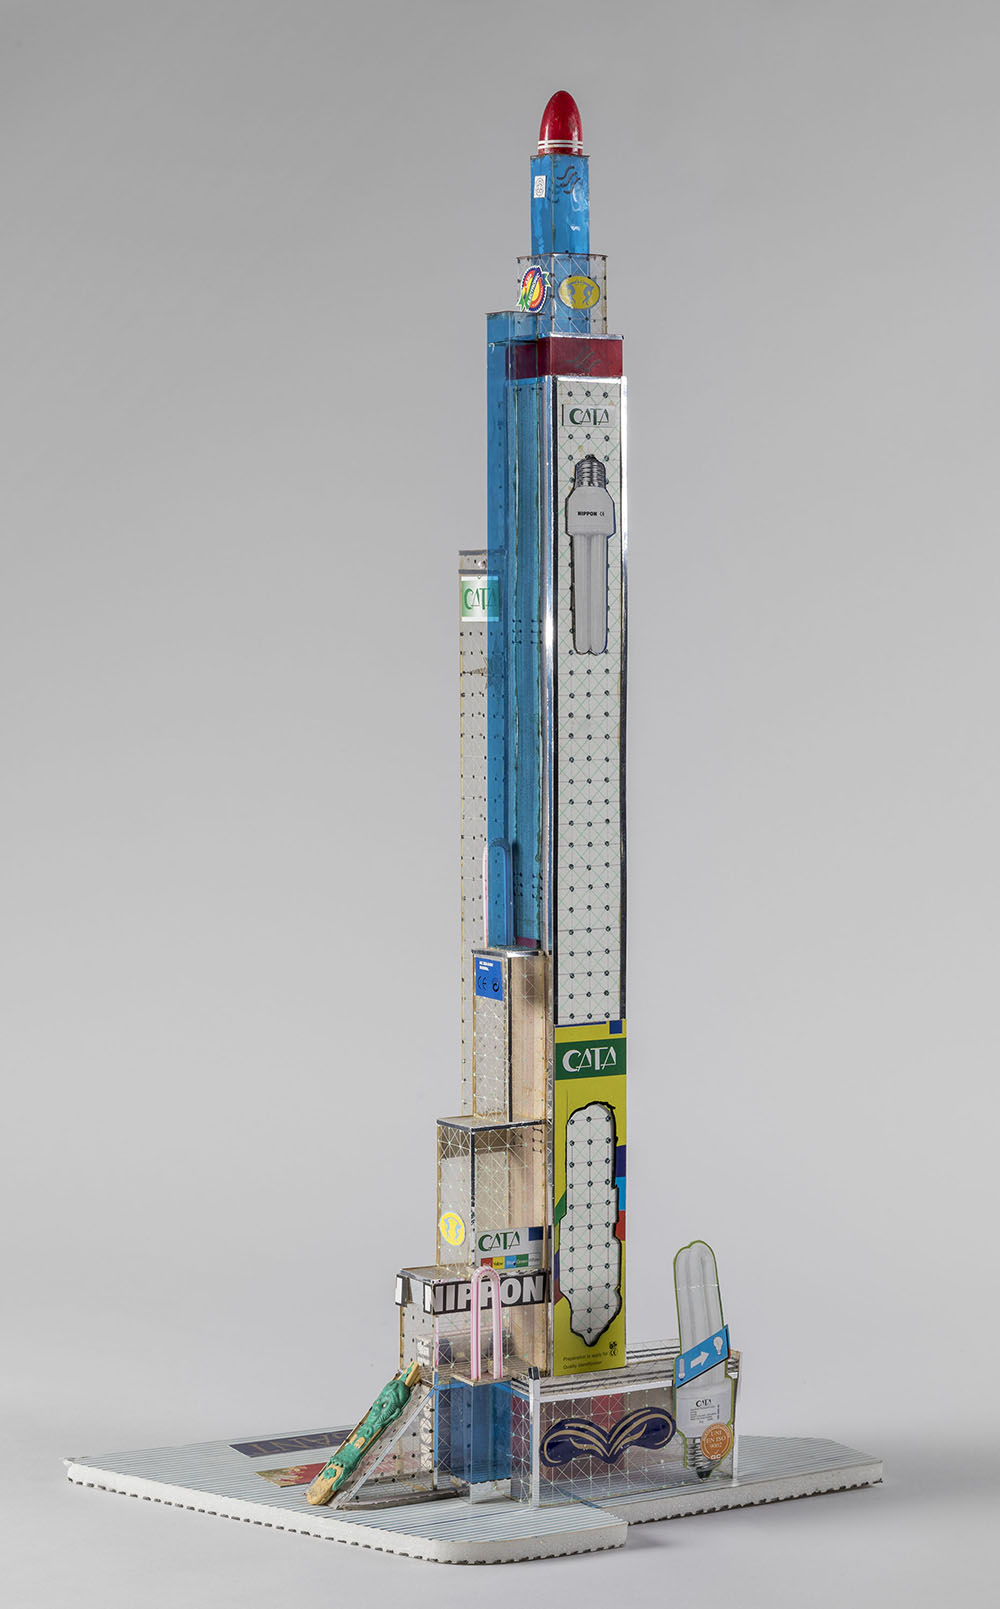 Bodys Isek Kingelez (Congolese, 1948-2015). Nippon Tower. 2005. Paper, paperboard, plastic, and other various materials, 26 3/8 × 13 3/8 × 8 11/16″ (67 × 34 × 22 cm), irreg. Courtesy Aeroplastics Contemporary, Brussels. Vincent Everarts Photography Brussels